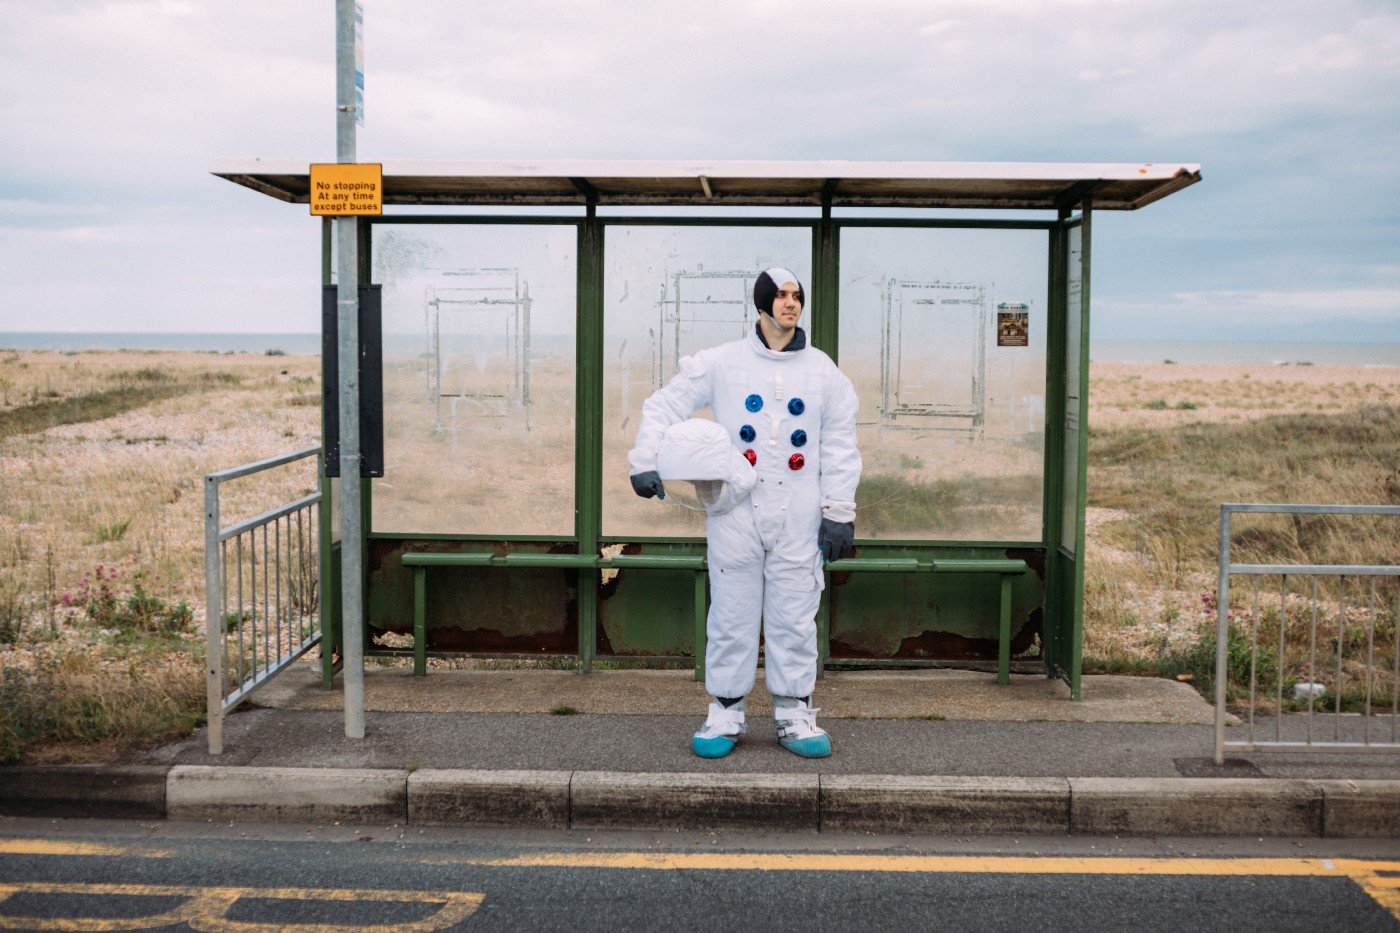 Man in an astronaut suit waiting at a bus stop.